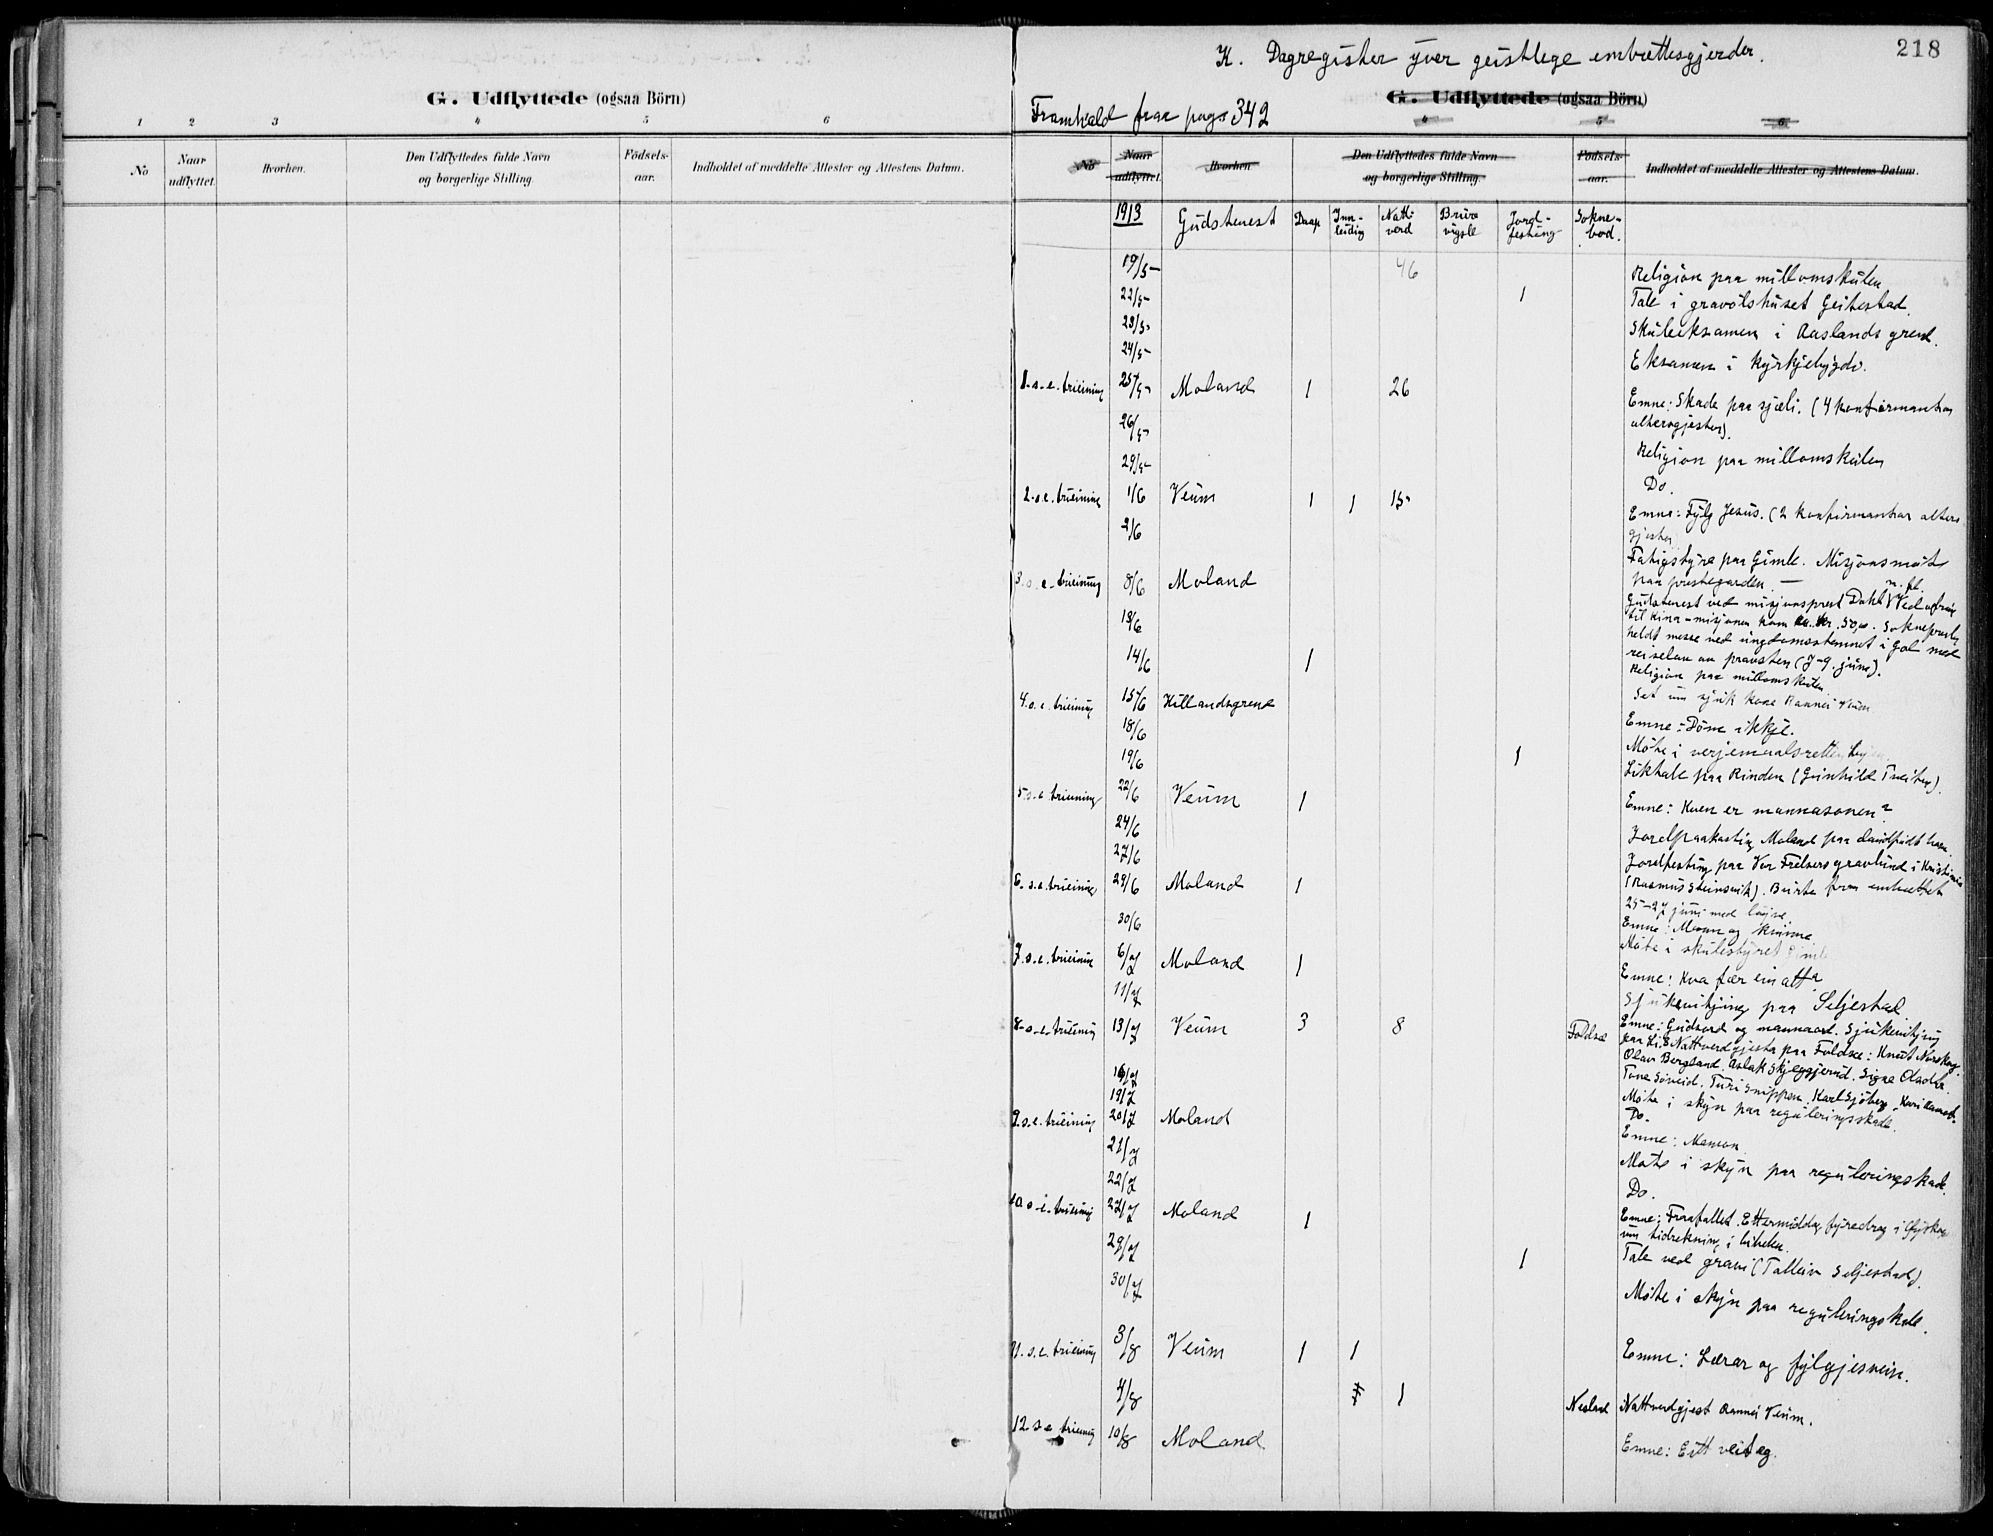 SAKO, Fyresdal kirkebøker, F/Fa/L0007: Parish register (official) no. I 7, 1887-1914, p. 218